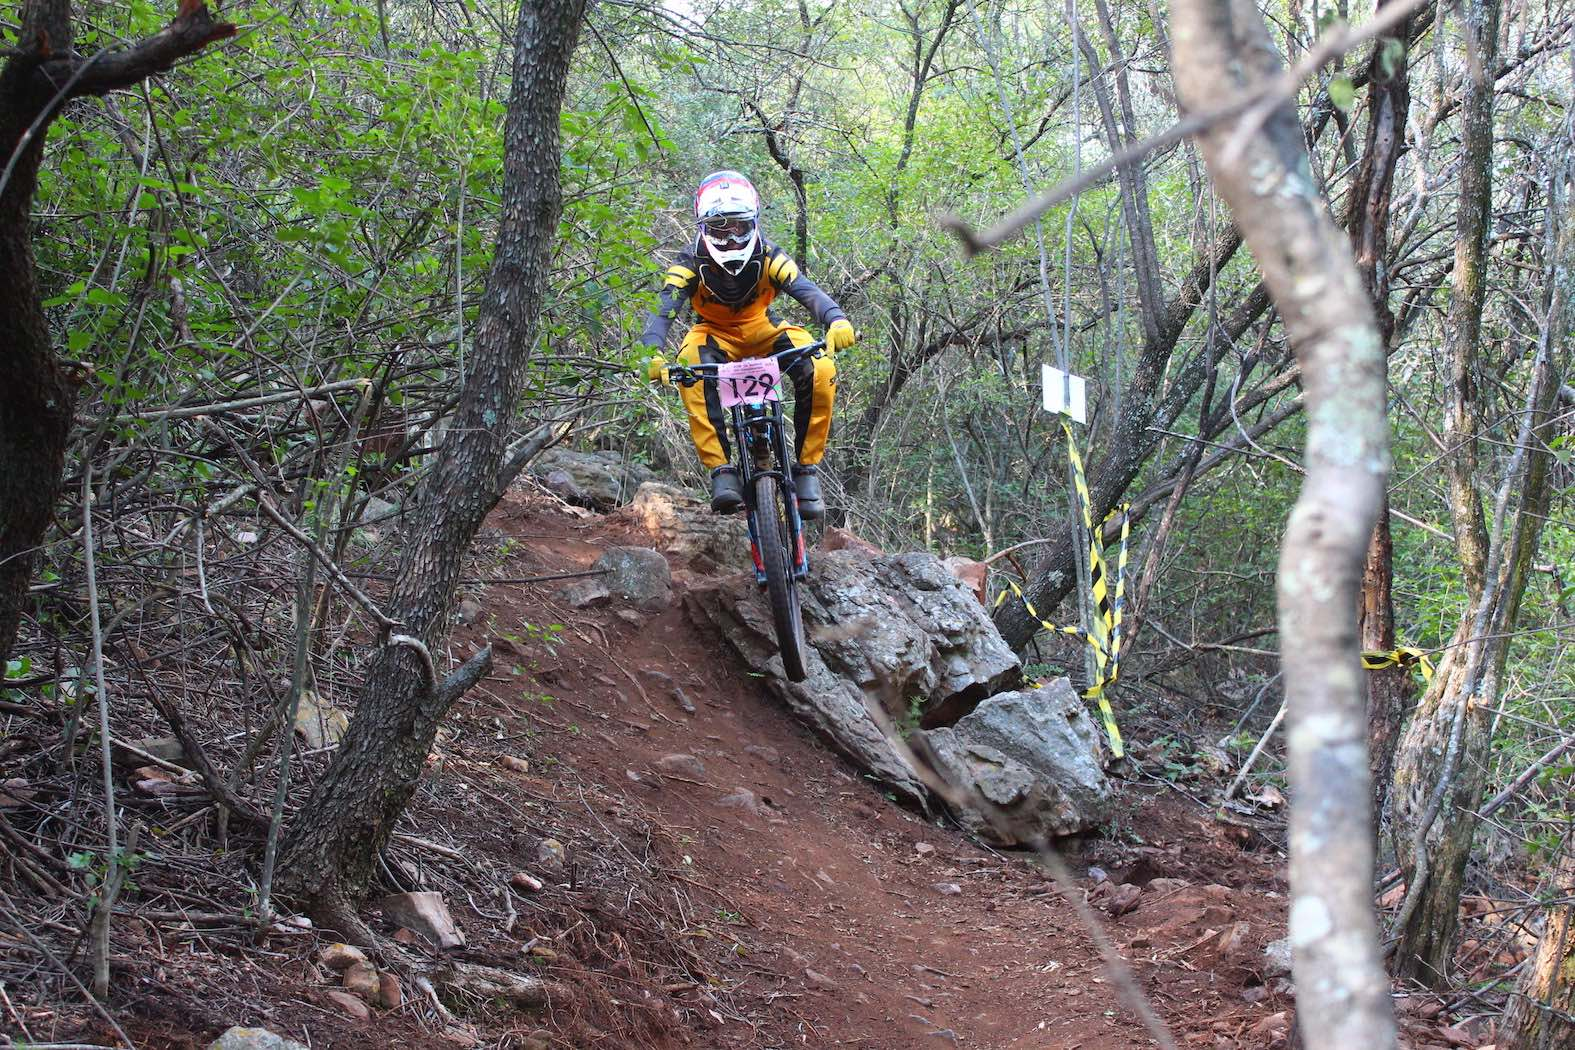 Downhill MTB action from the Hartbeespoort Adventure and Trail Park